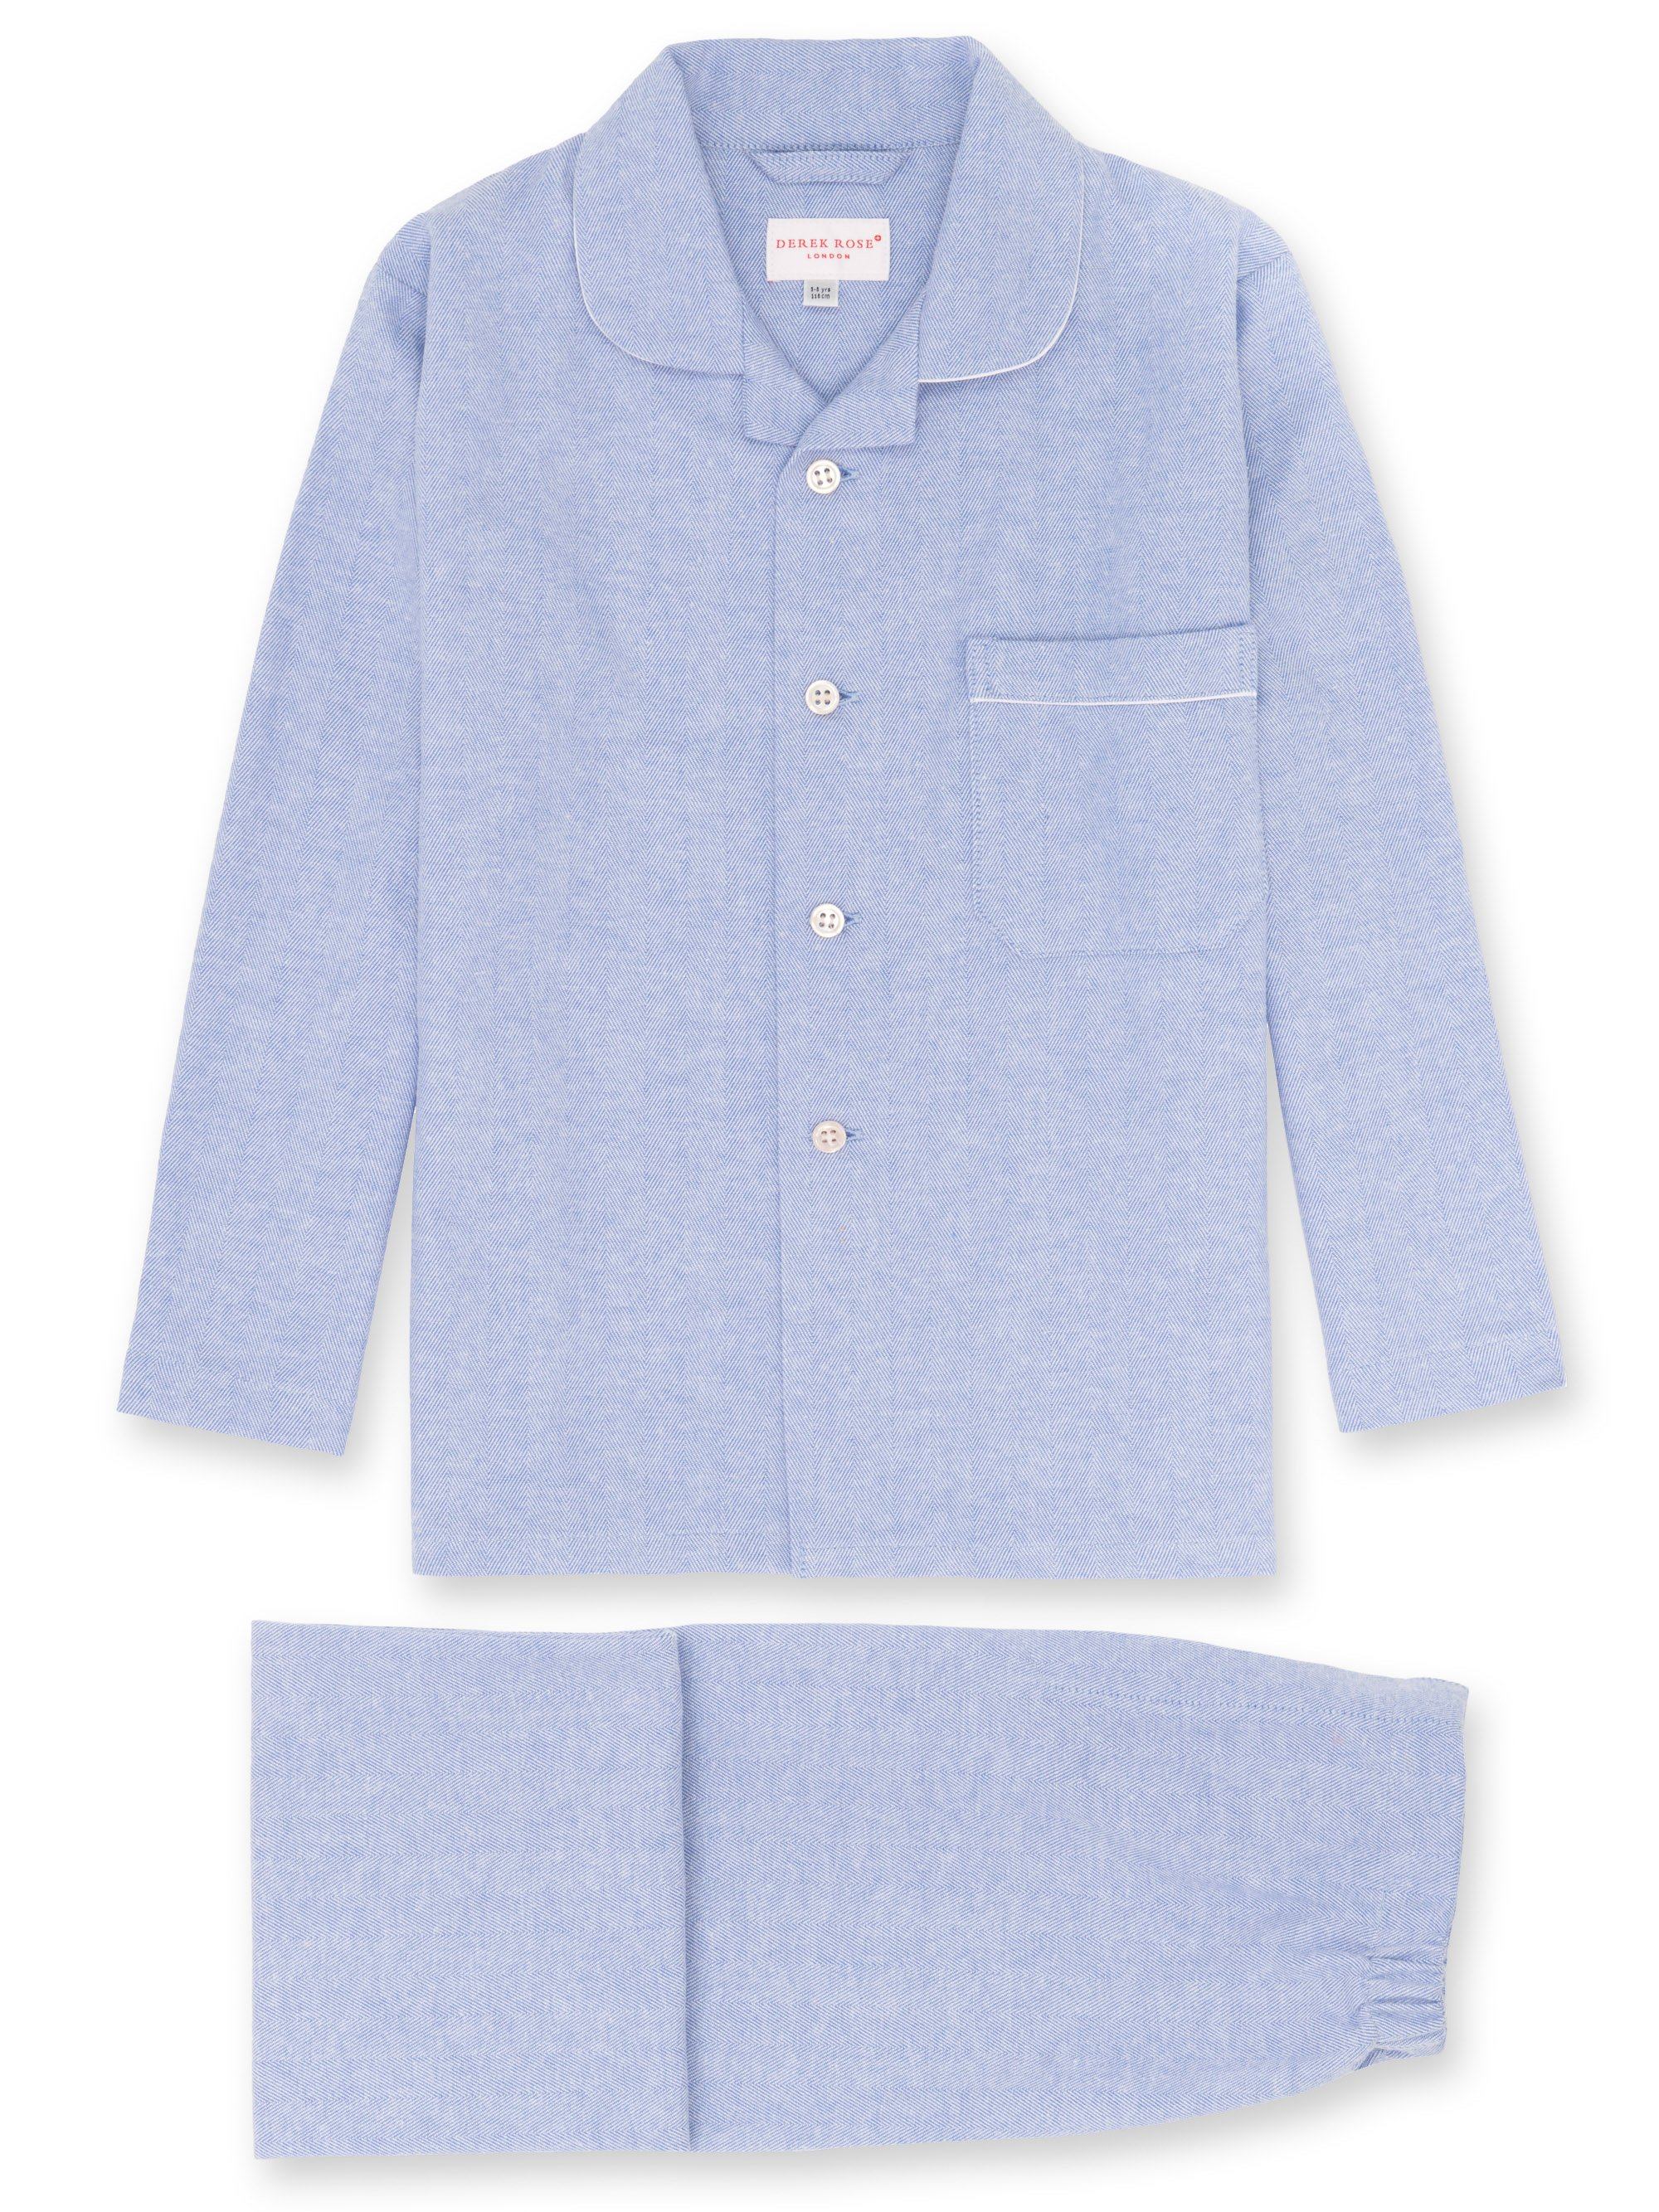 Boys' Pyjamas Arran 24 Brushed Herringbone Cotton Blue